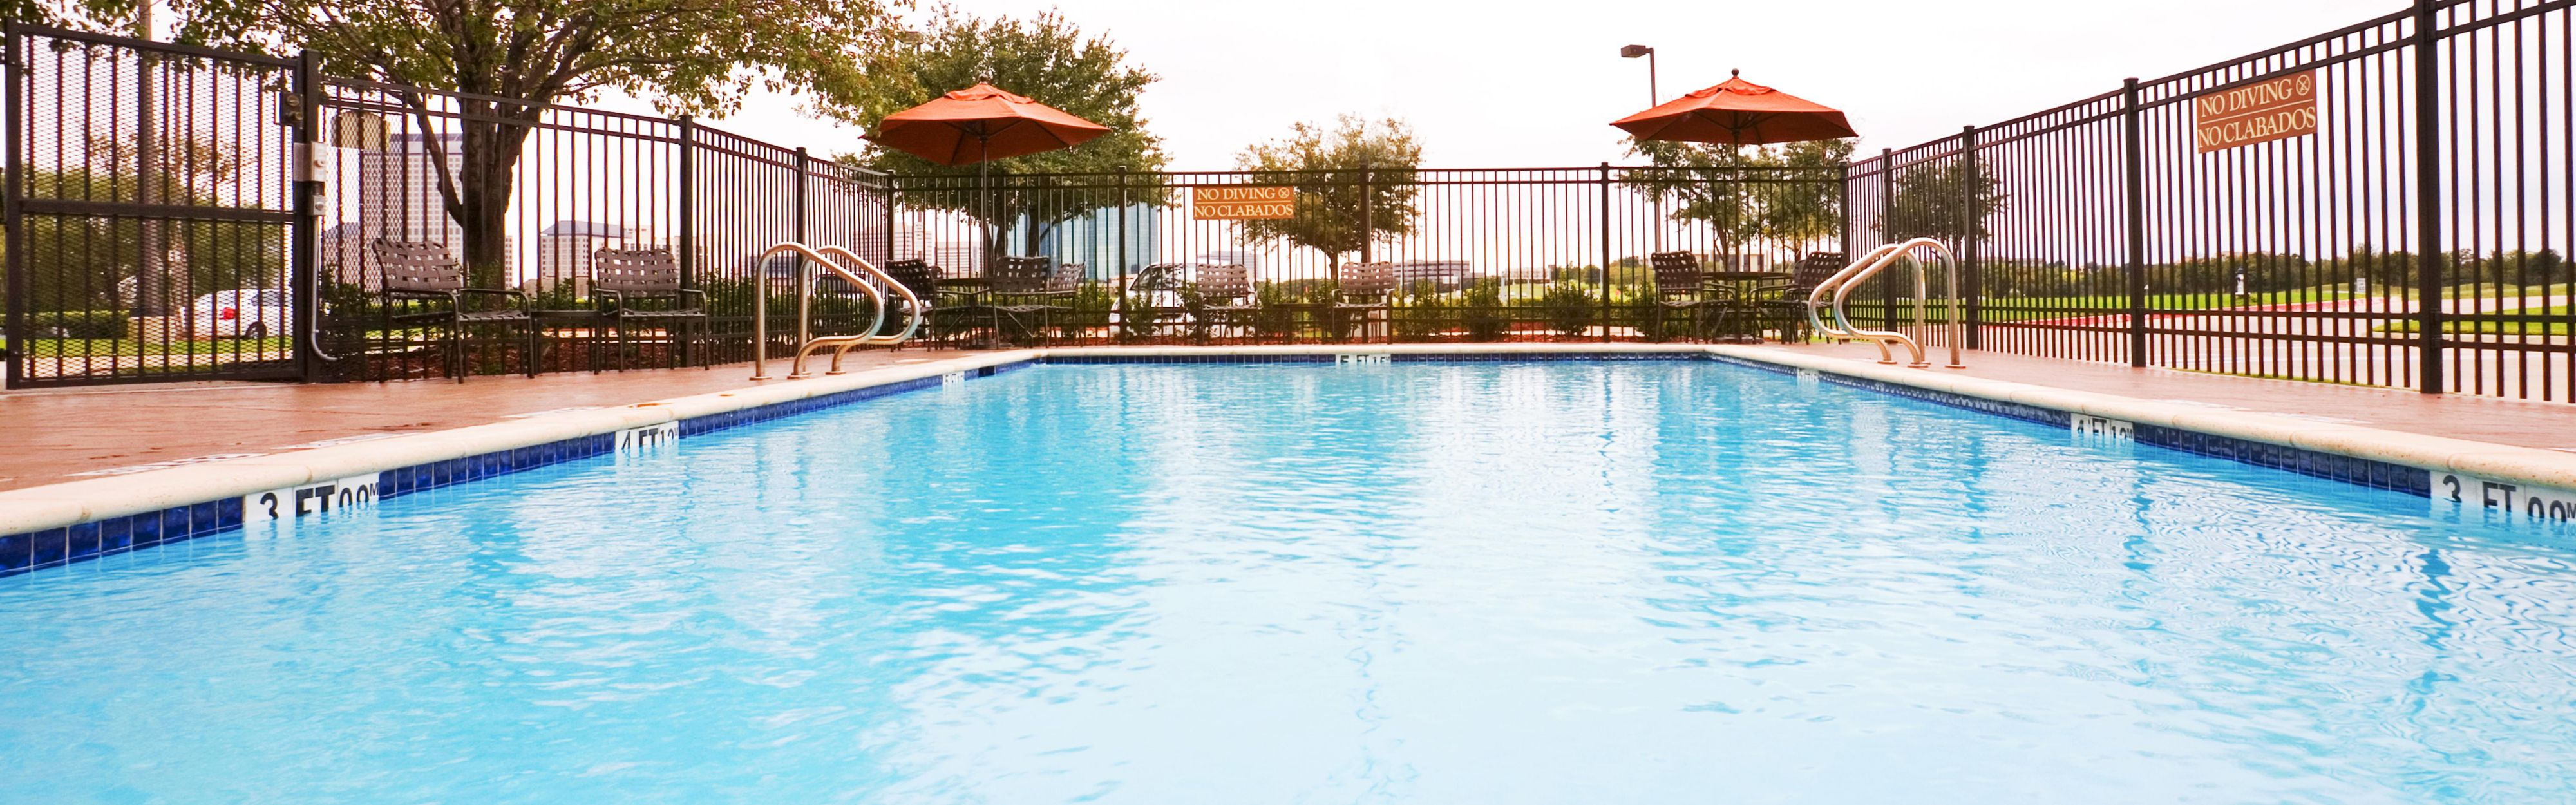 Holiday Inn Express & Suites Irving Conv Ctr - Las Colinas image 2